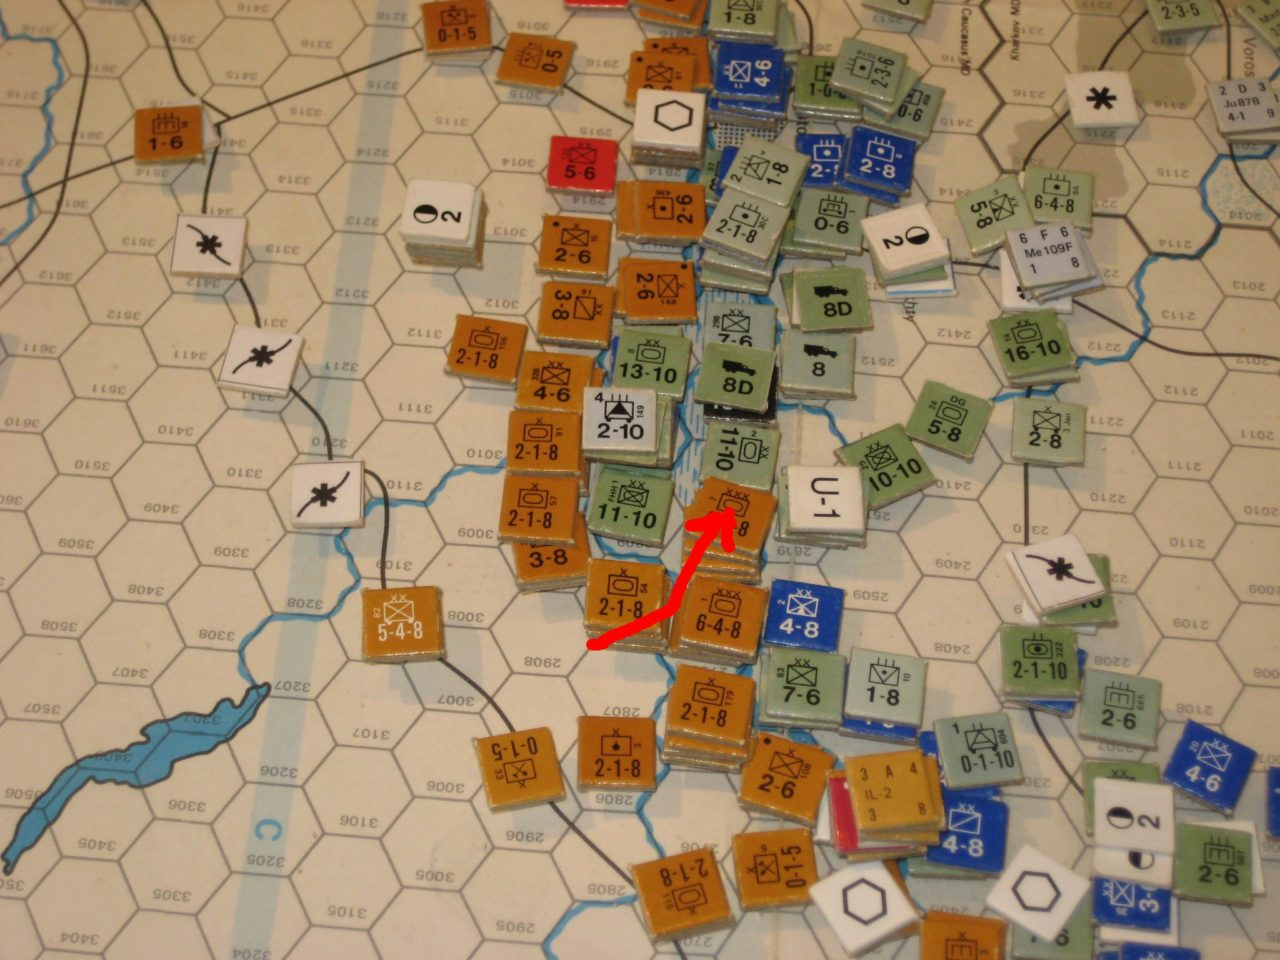 Soviet attack south of the Don